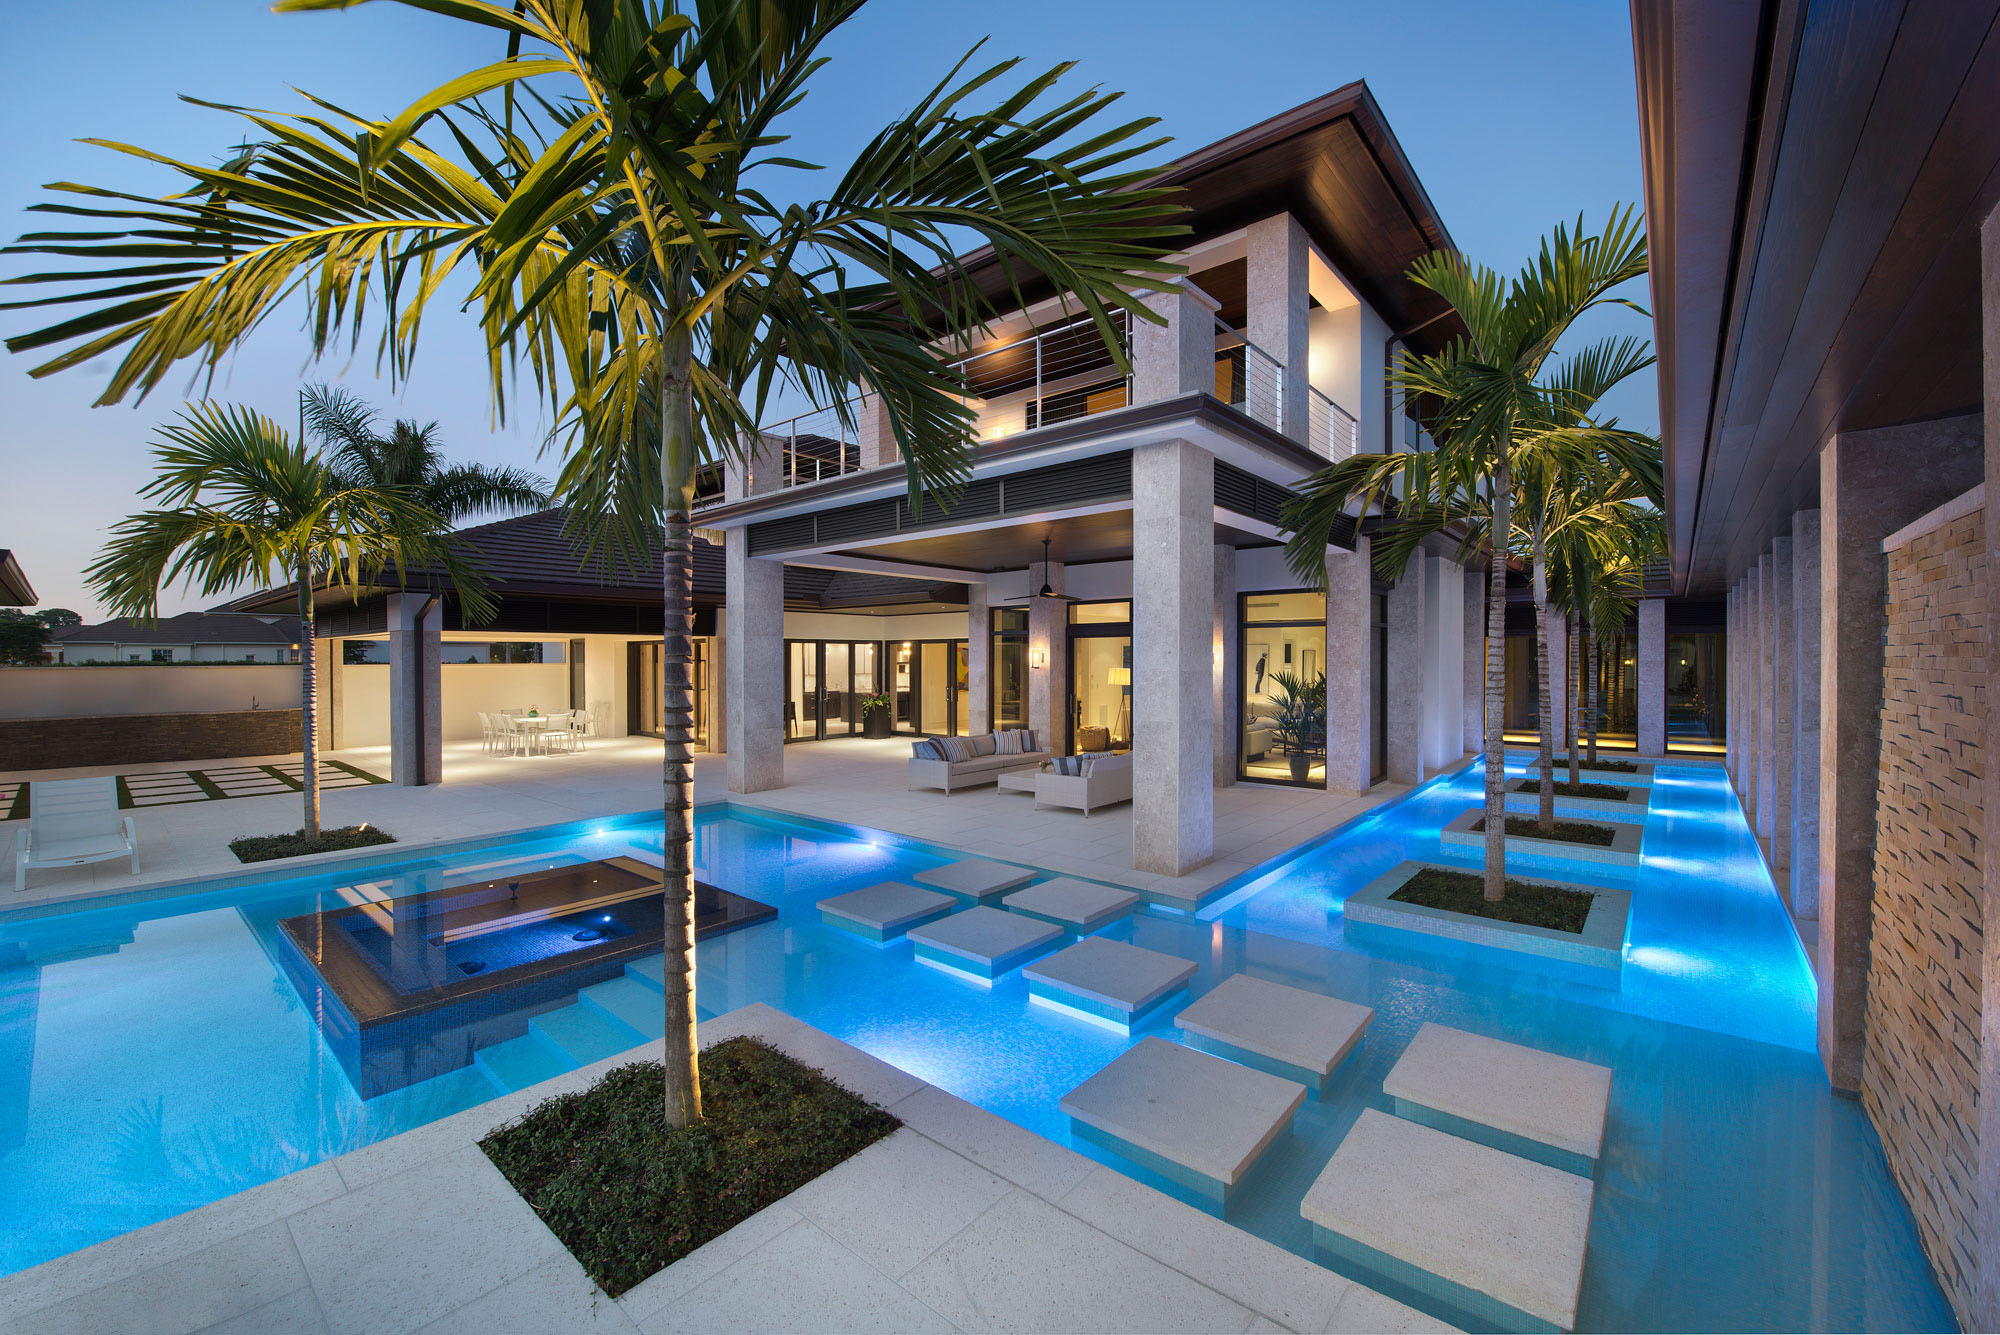 Custom dream home in florida with elegant swimming pool for Pool villa design